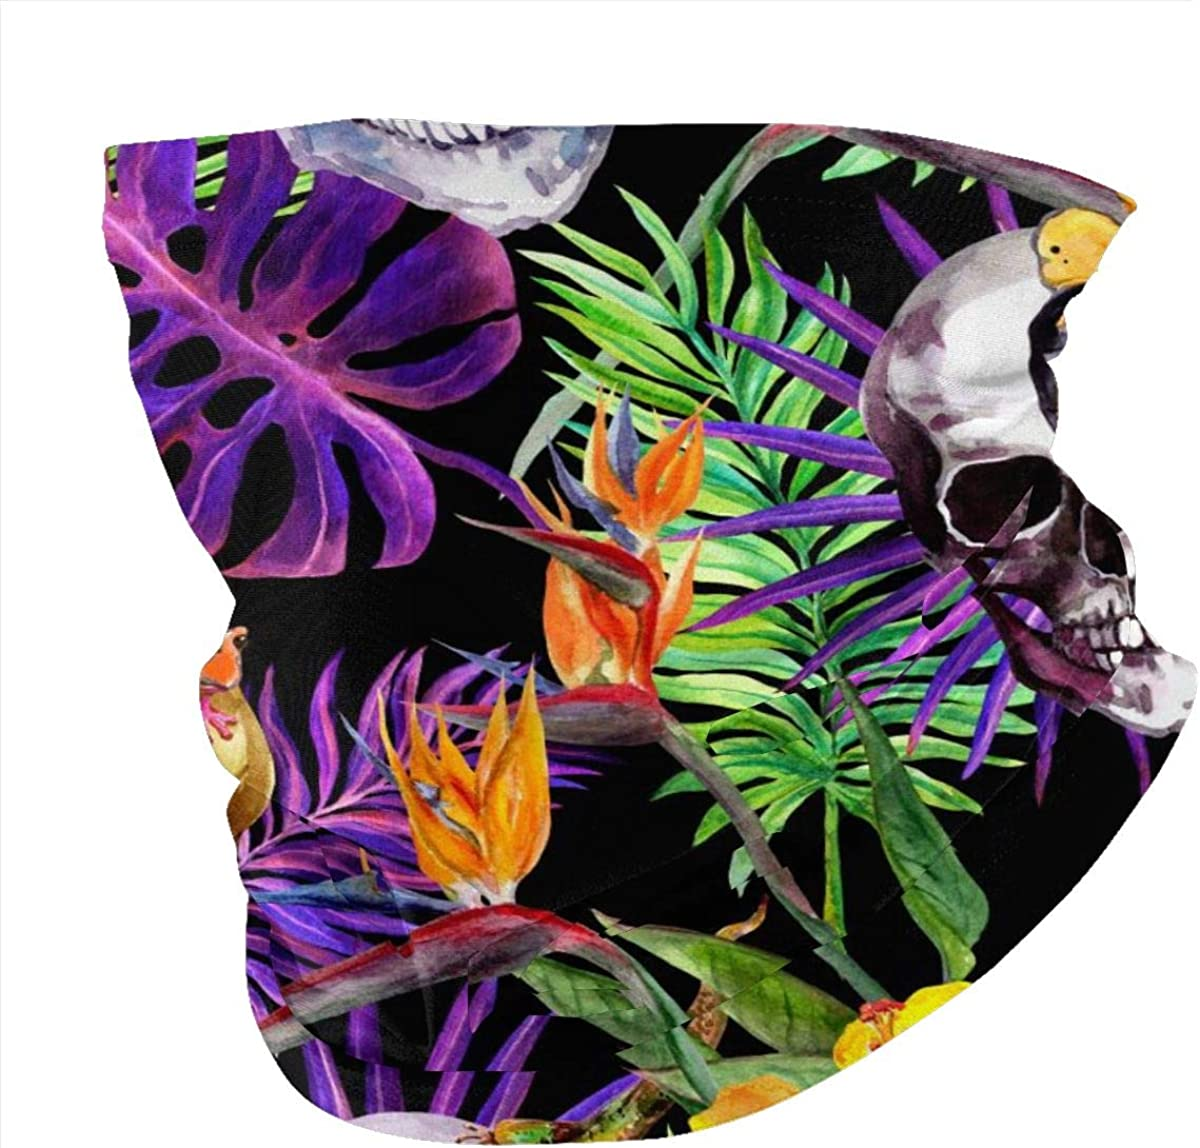 Unisex Face Bandana Human Skulls Tropical Leaves Animals Exotic Flowers Repeating Pattern On Black Background Watercolor Protection Sun Uv Dust Protection Breathable Sports Scarves Magic Scarf At Amazon Women S Clothing Store Download 260 tropical leaves black free vectors. amazon com